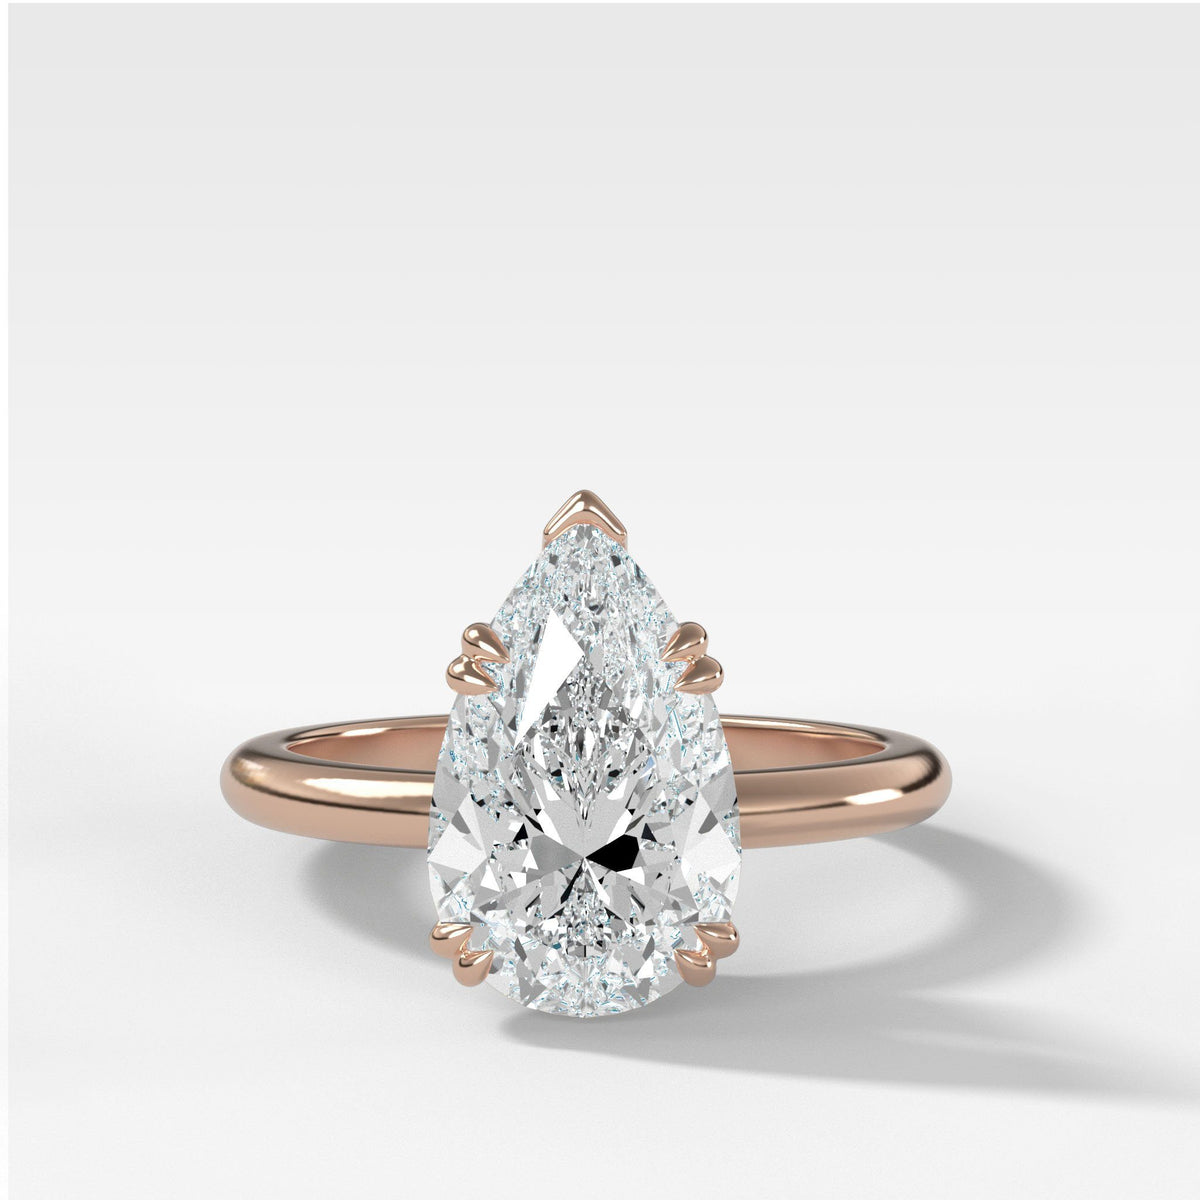 Signature Cathedral Solitaire With Pear Cut in Rose Gold by Good Stone